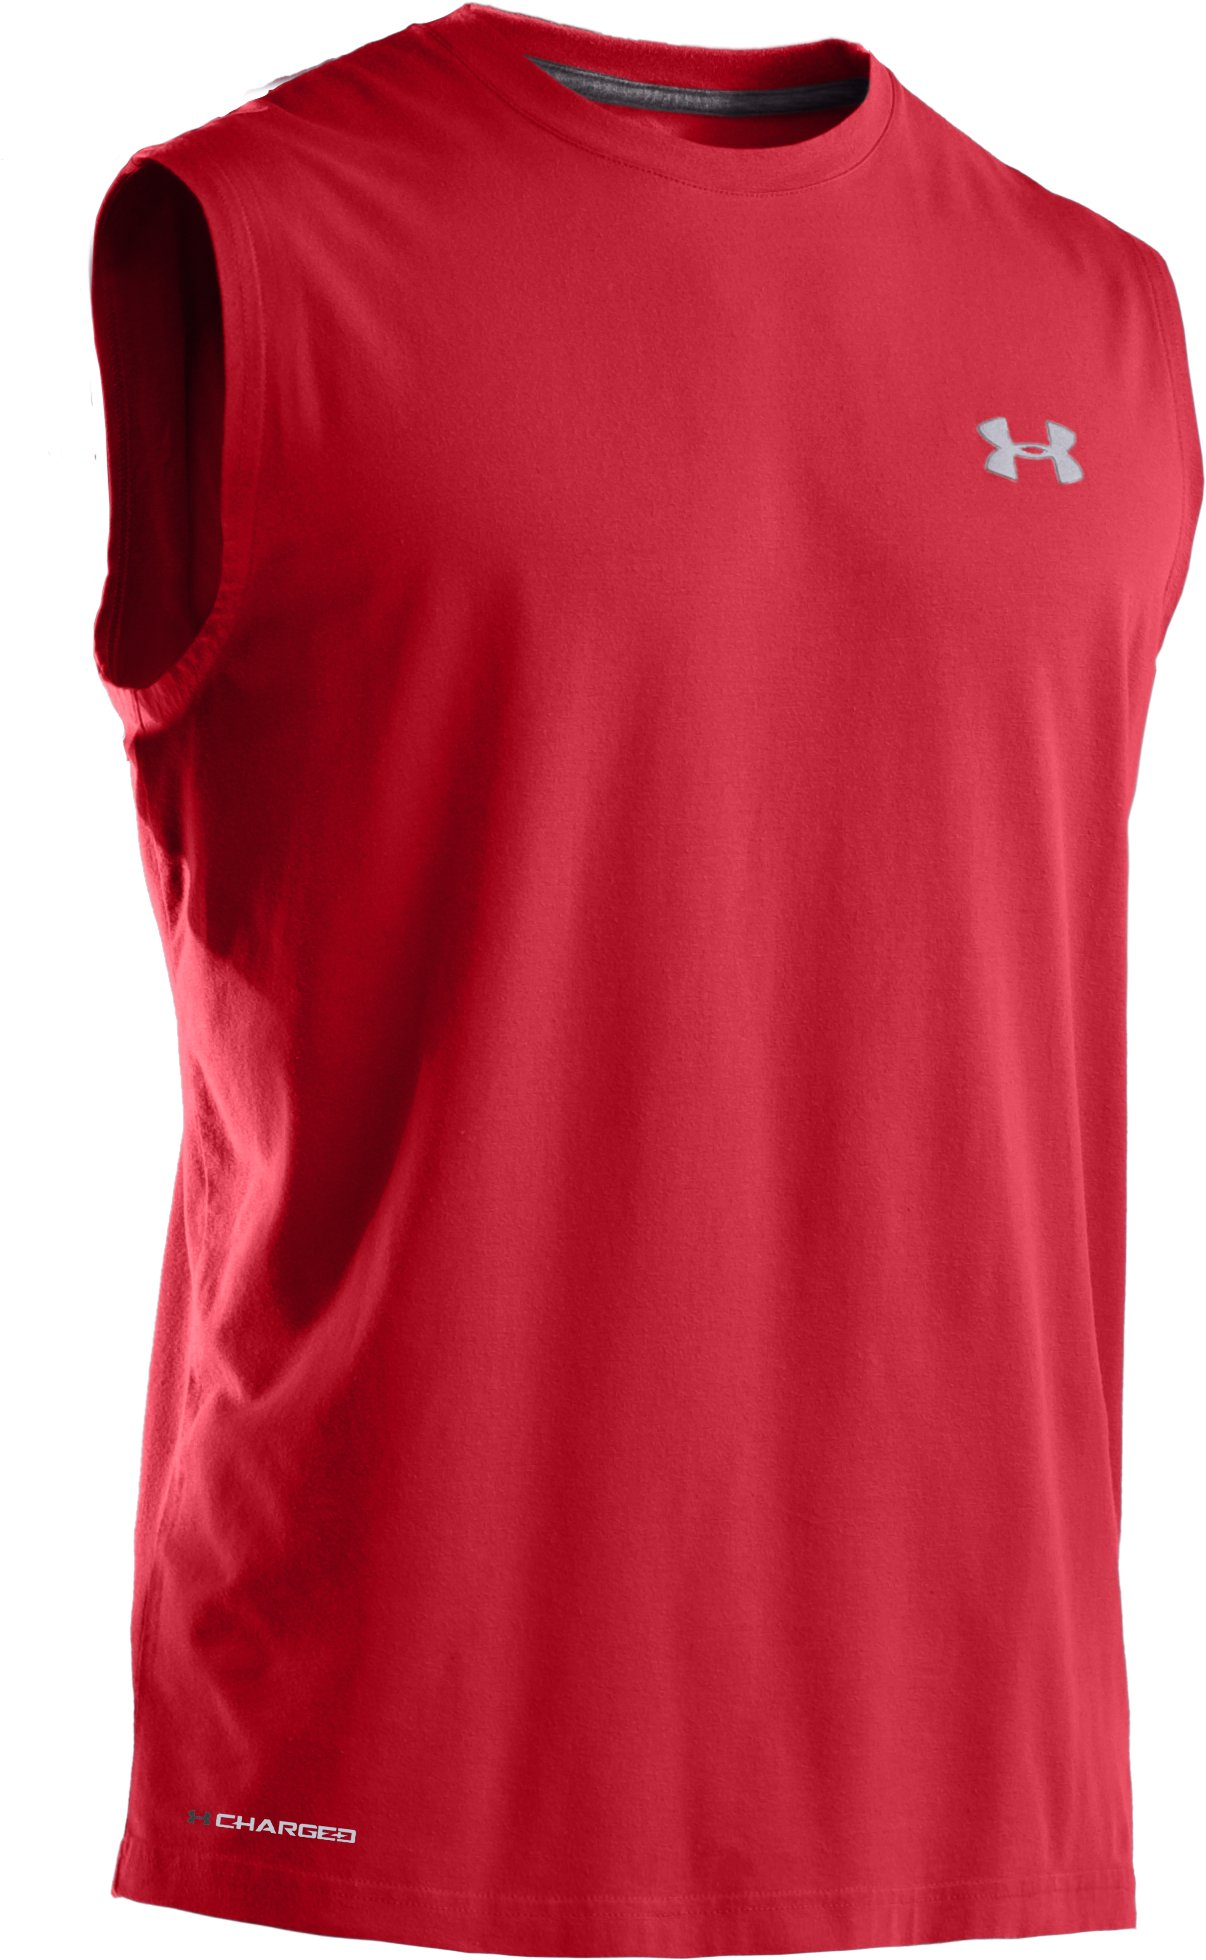 Men's Charged Cotton® Sleeveless T-shirt, Red